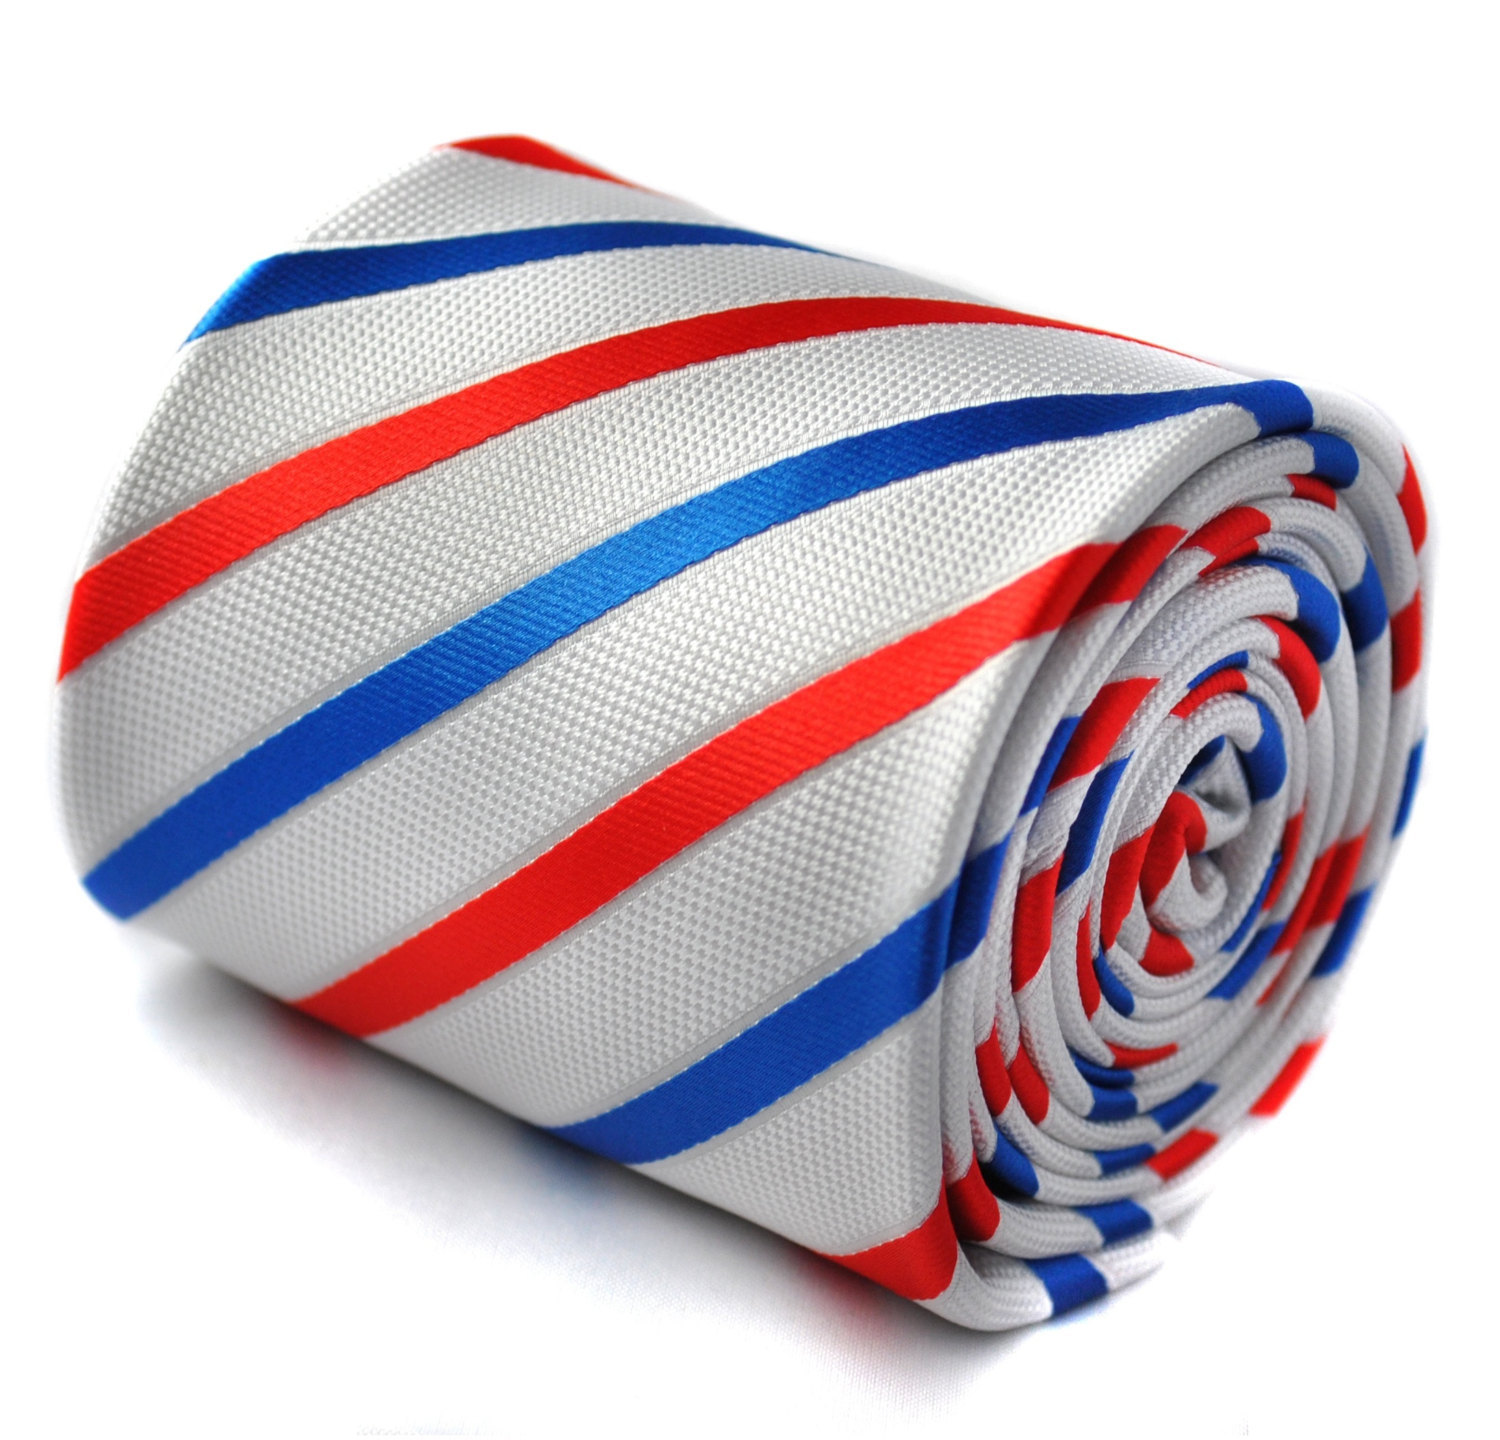 white with red and blue stripes tie with signature floral design to the rear by